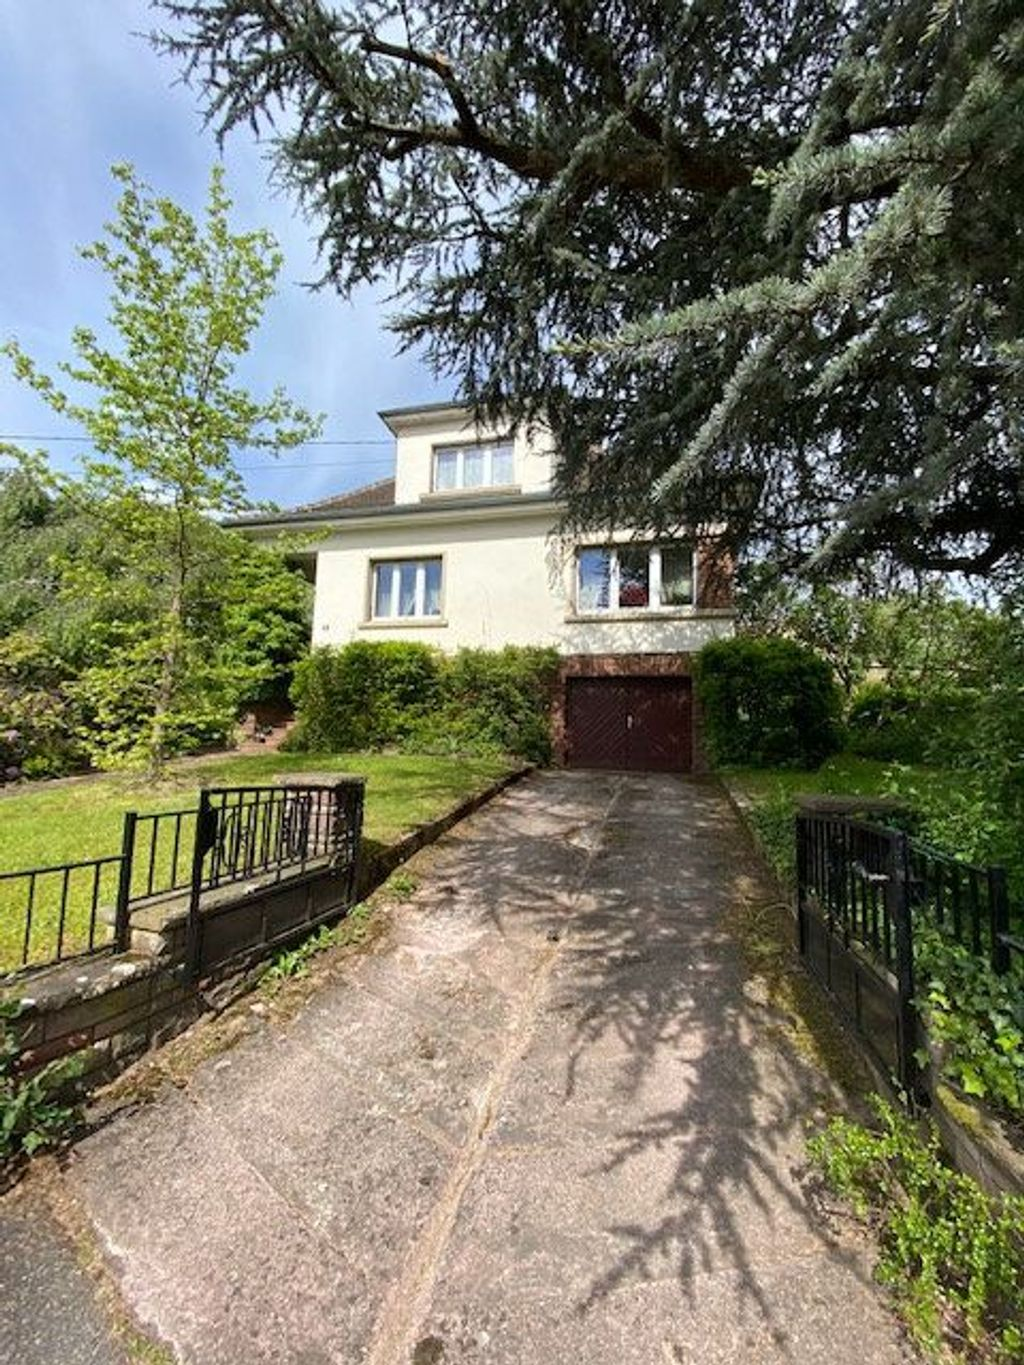 Achat maison 3chambres 133m² - Ingwiller